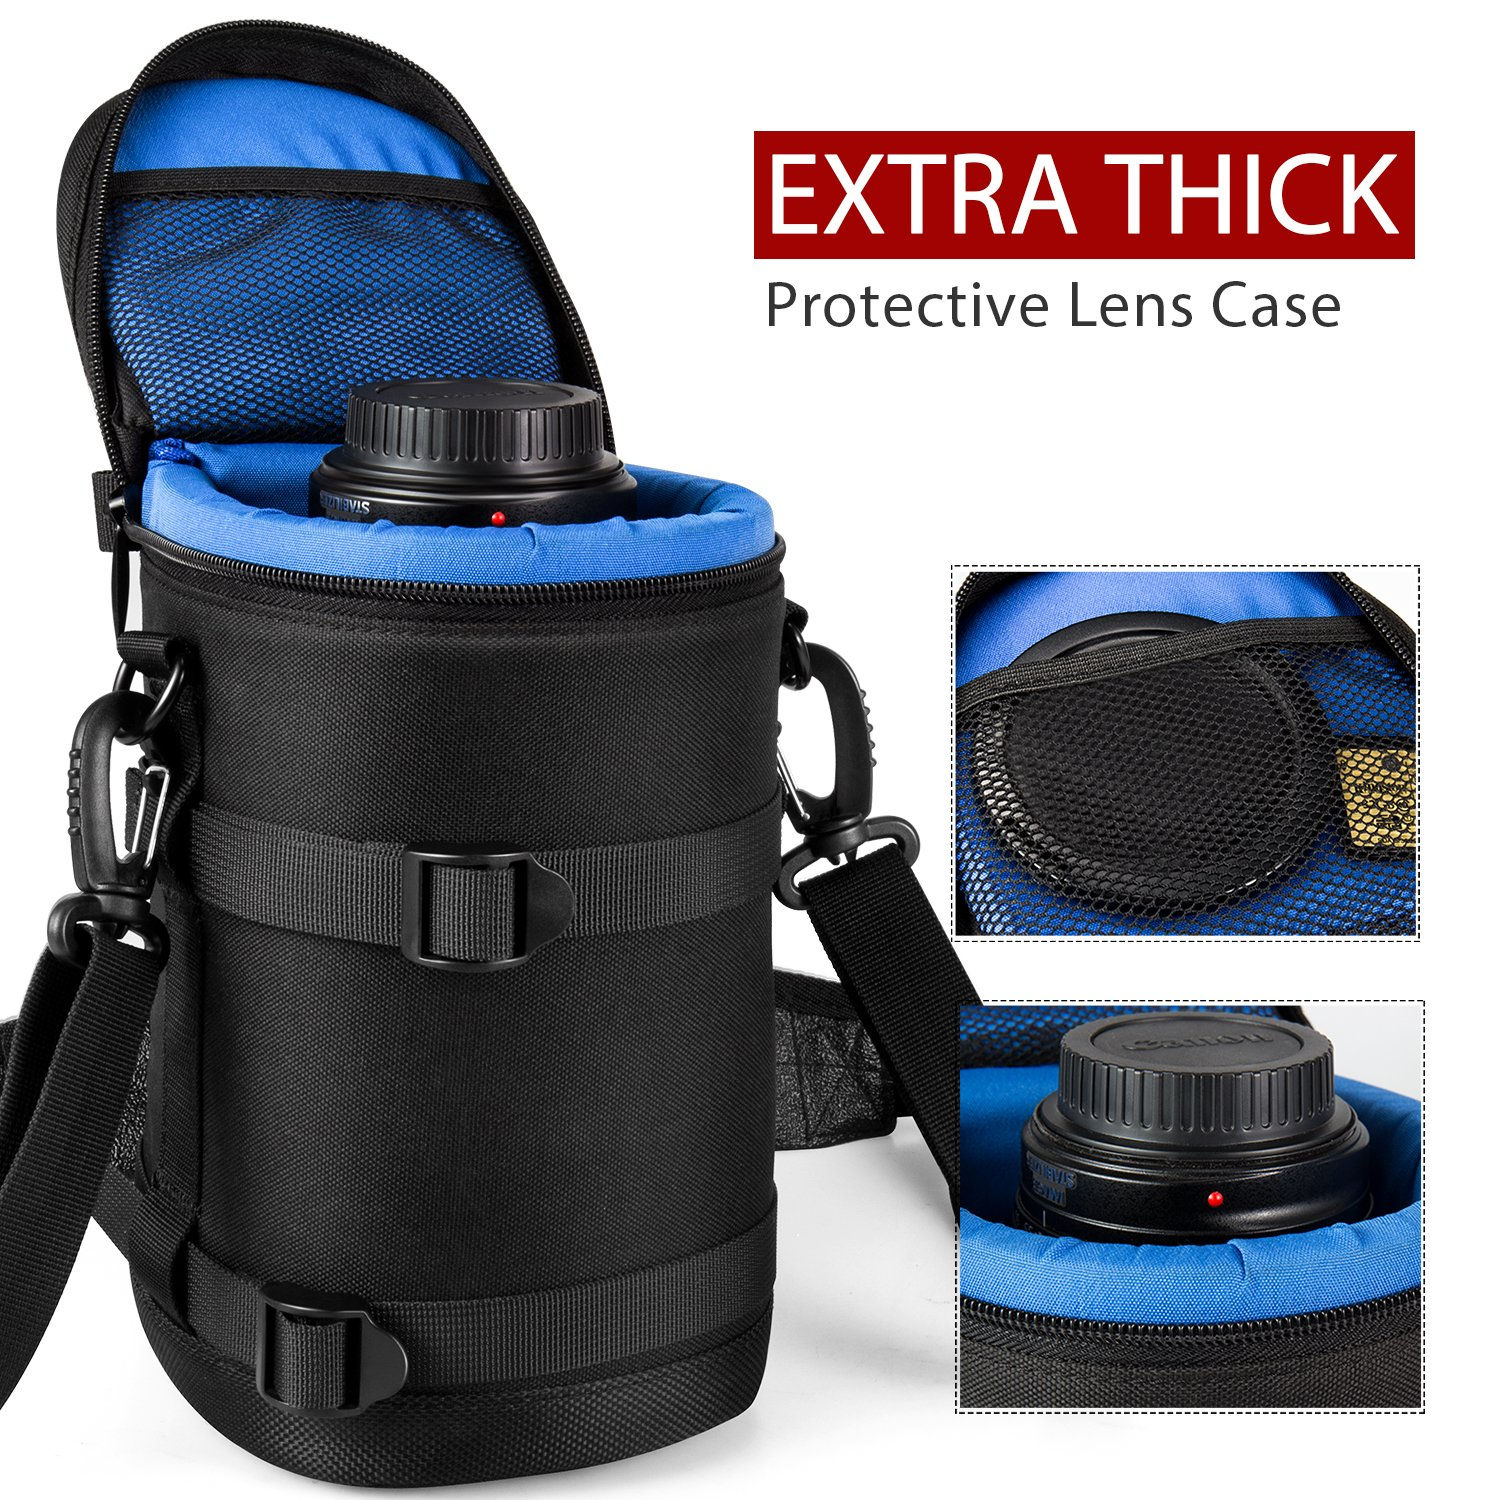 ESDDI Lens Case Extra Thick Protective Neoprene Lens Pouch for DSLR Camera Lens Canon, Nikon, Pentax, Sony, Olympus, Panasonic